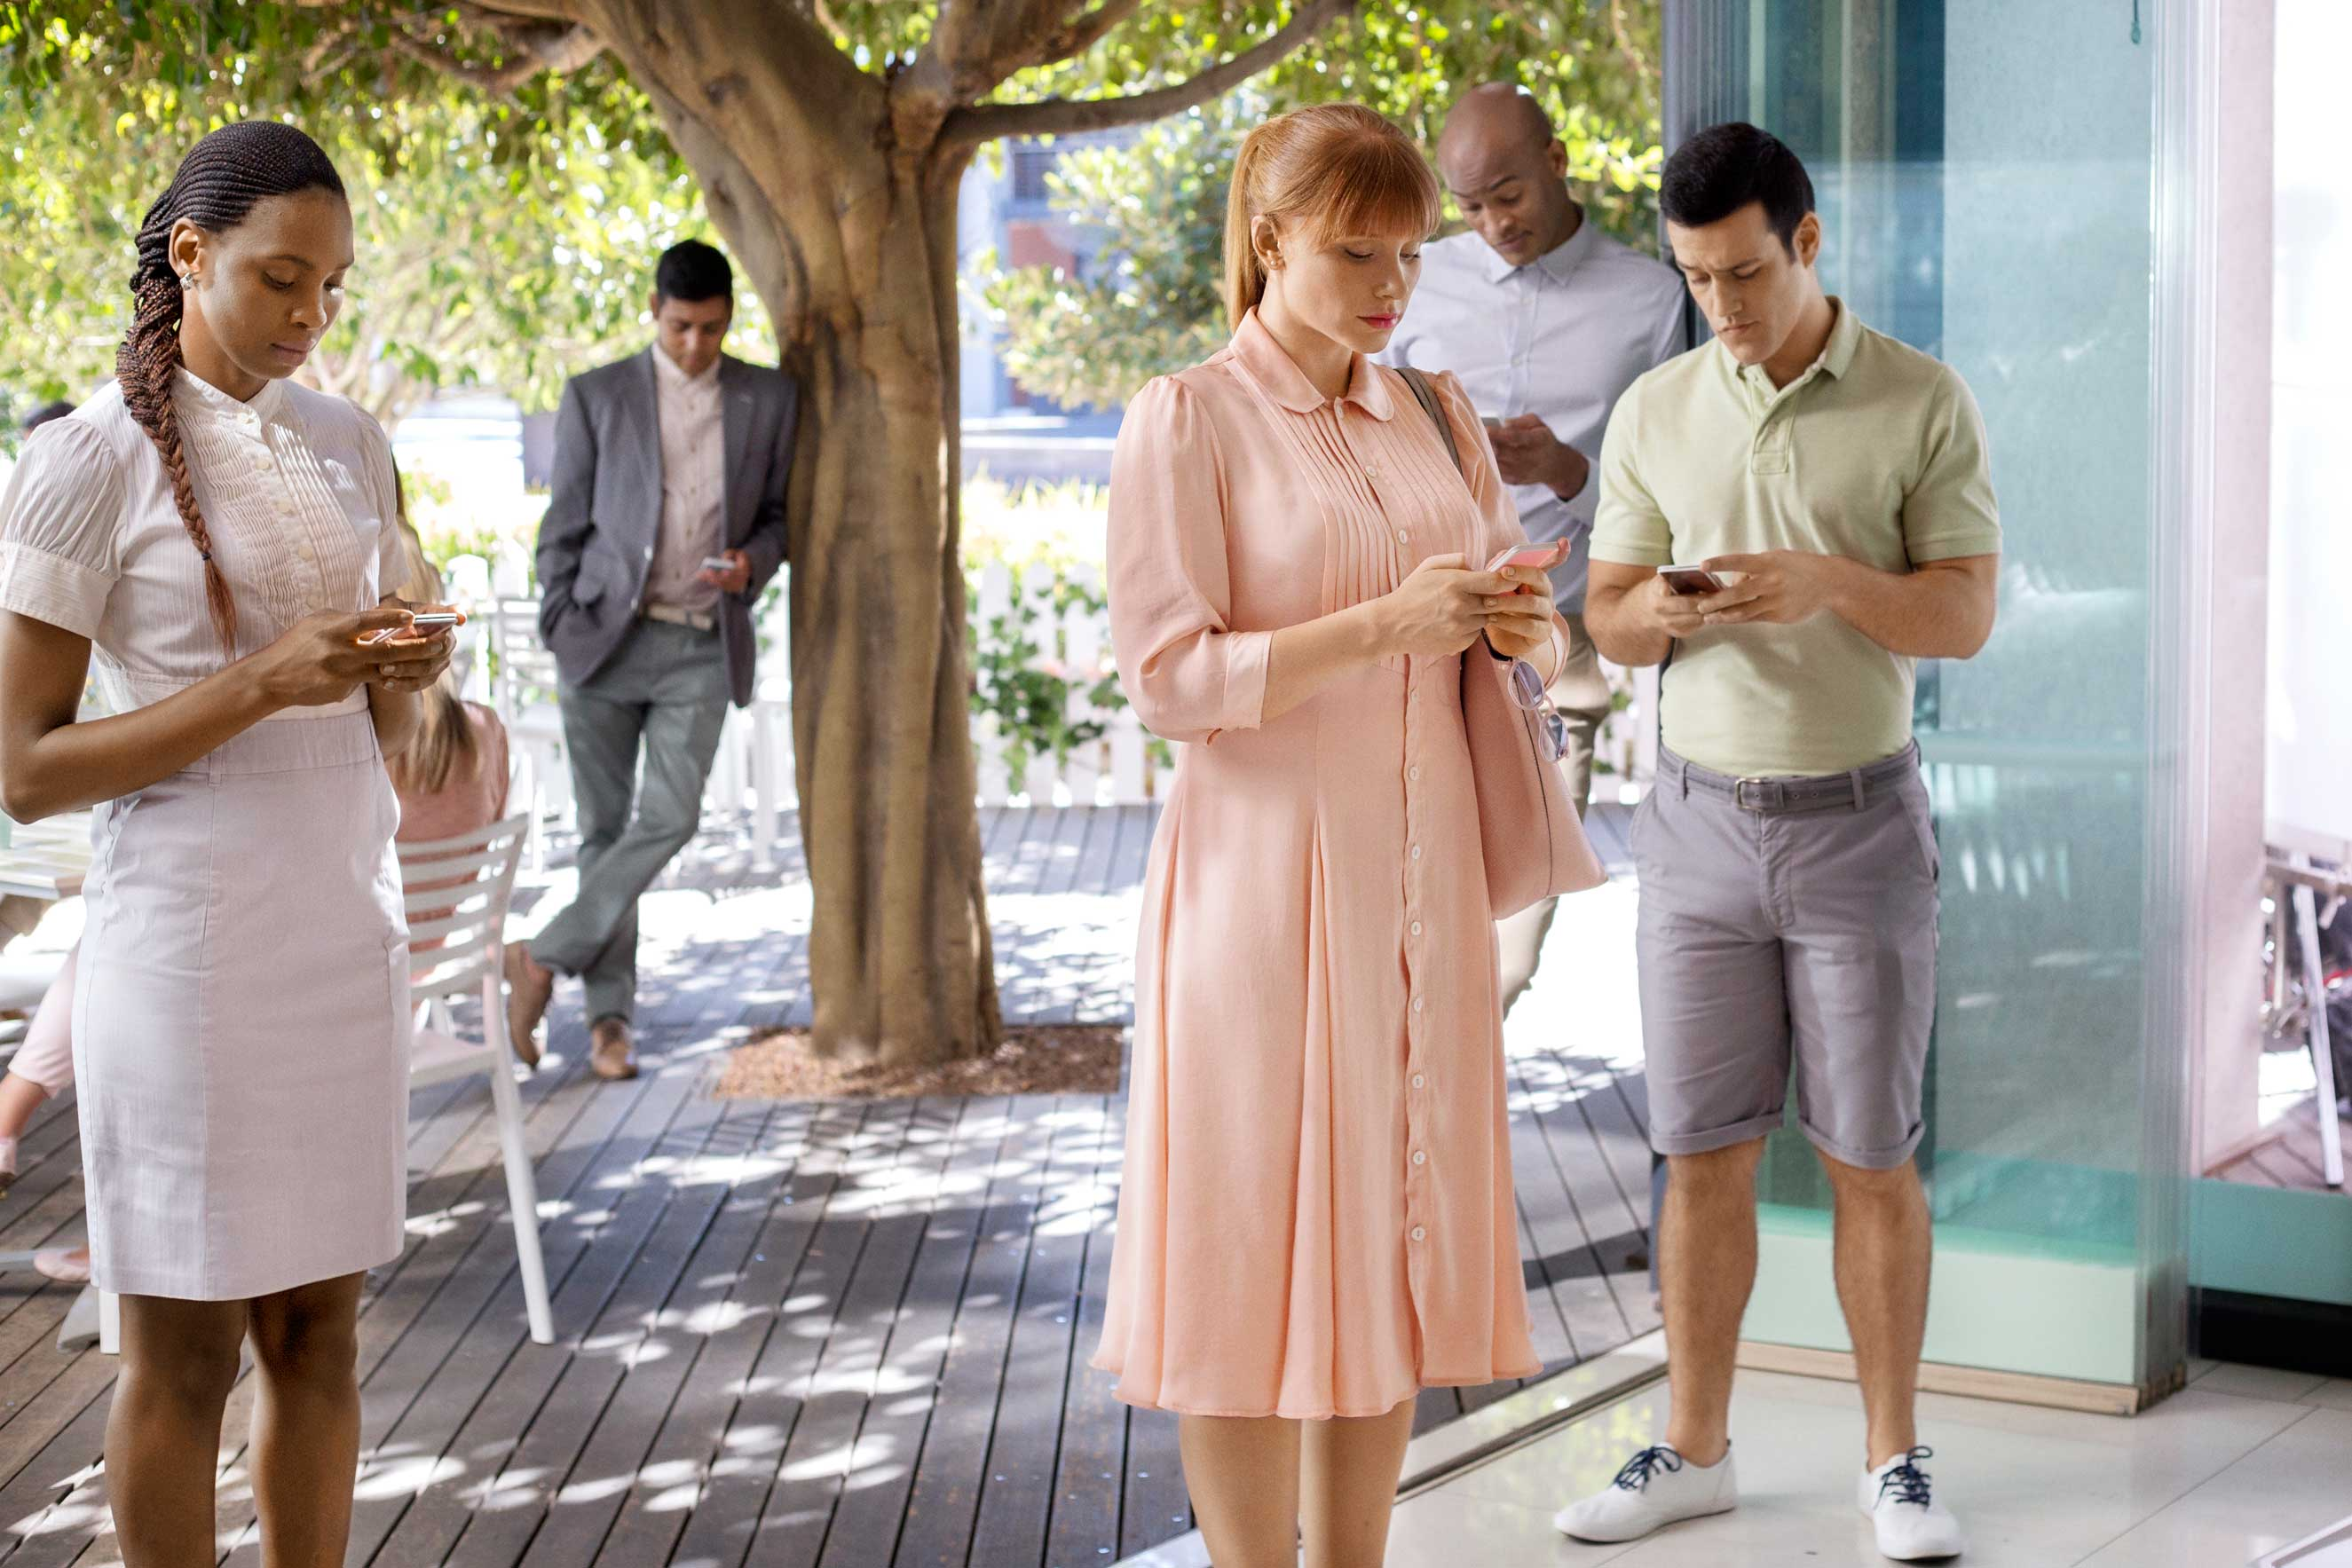 Lacie (Bryce Dallas Howard) is obsessed with likes in an episode of Black Mirror